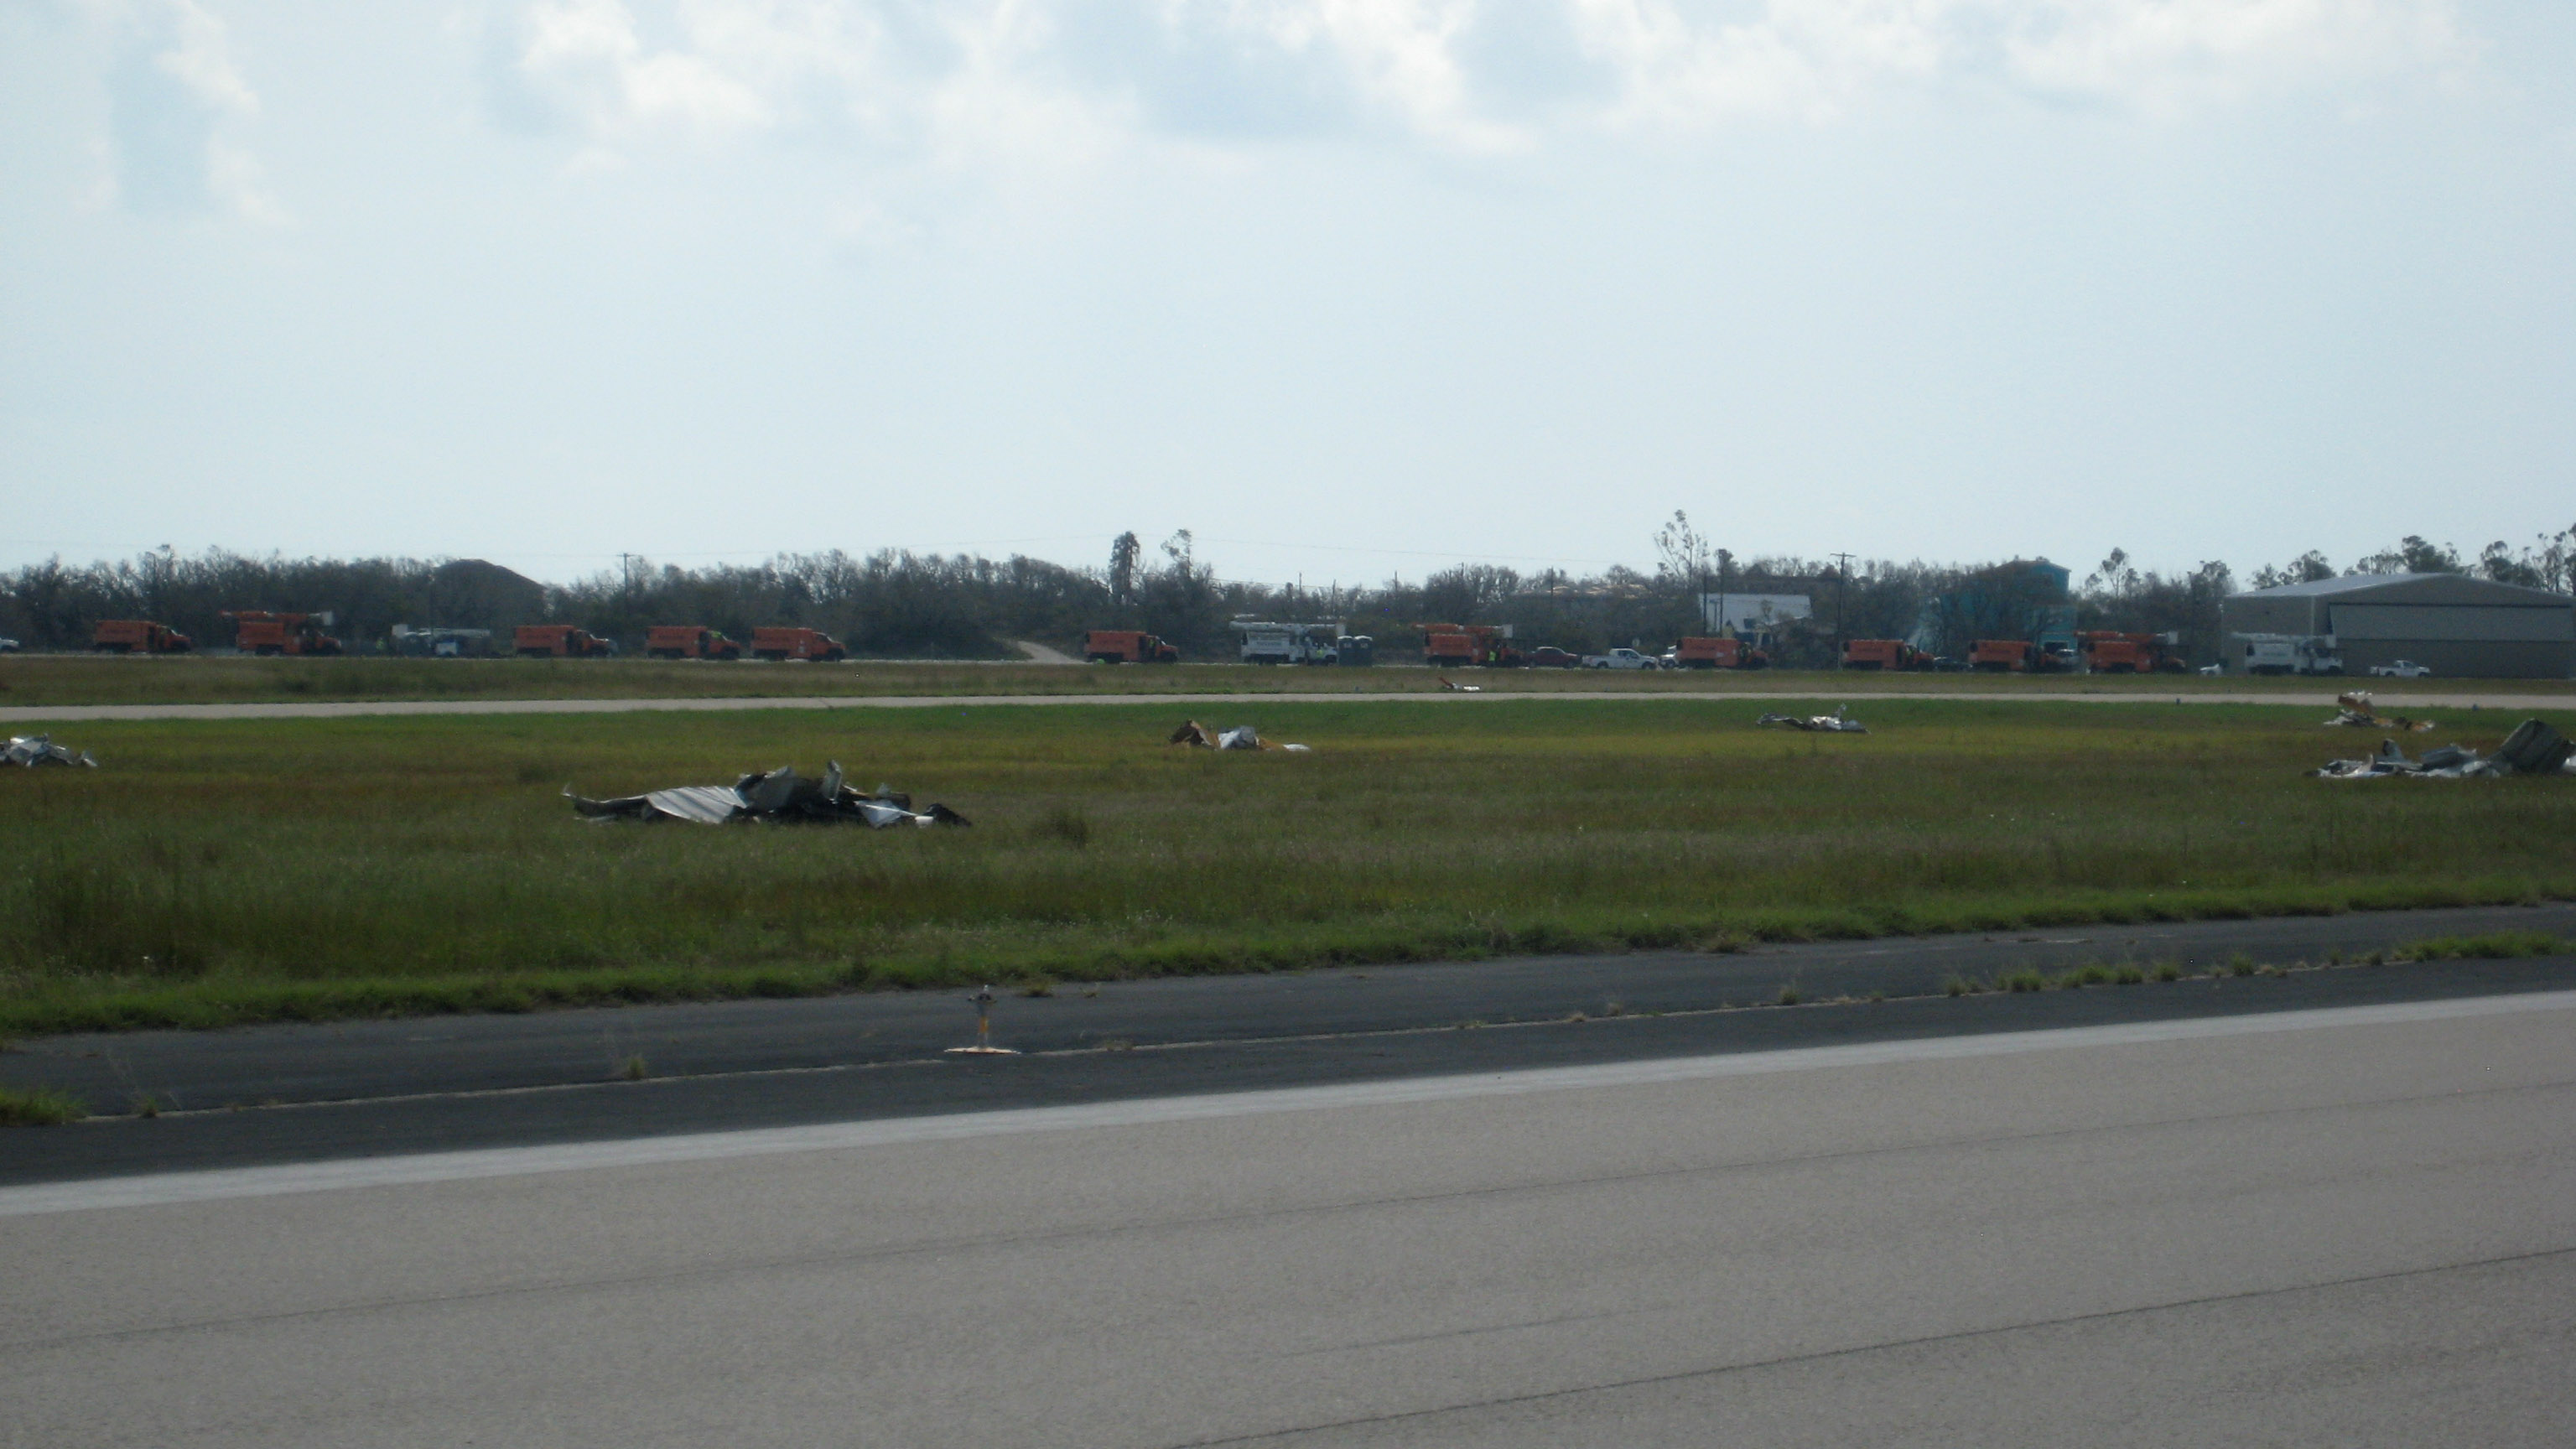 In Rockport, Texas, volunteers swept up piles of hangar debris. Orange FEMA trucks are in the background on the second runway. Photo by Larry Brown.